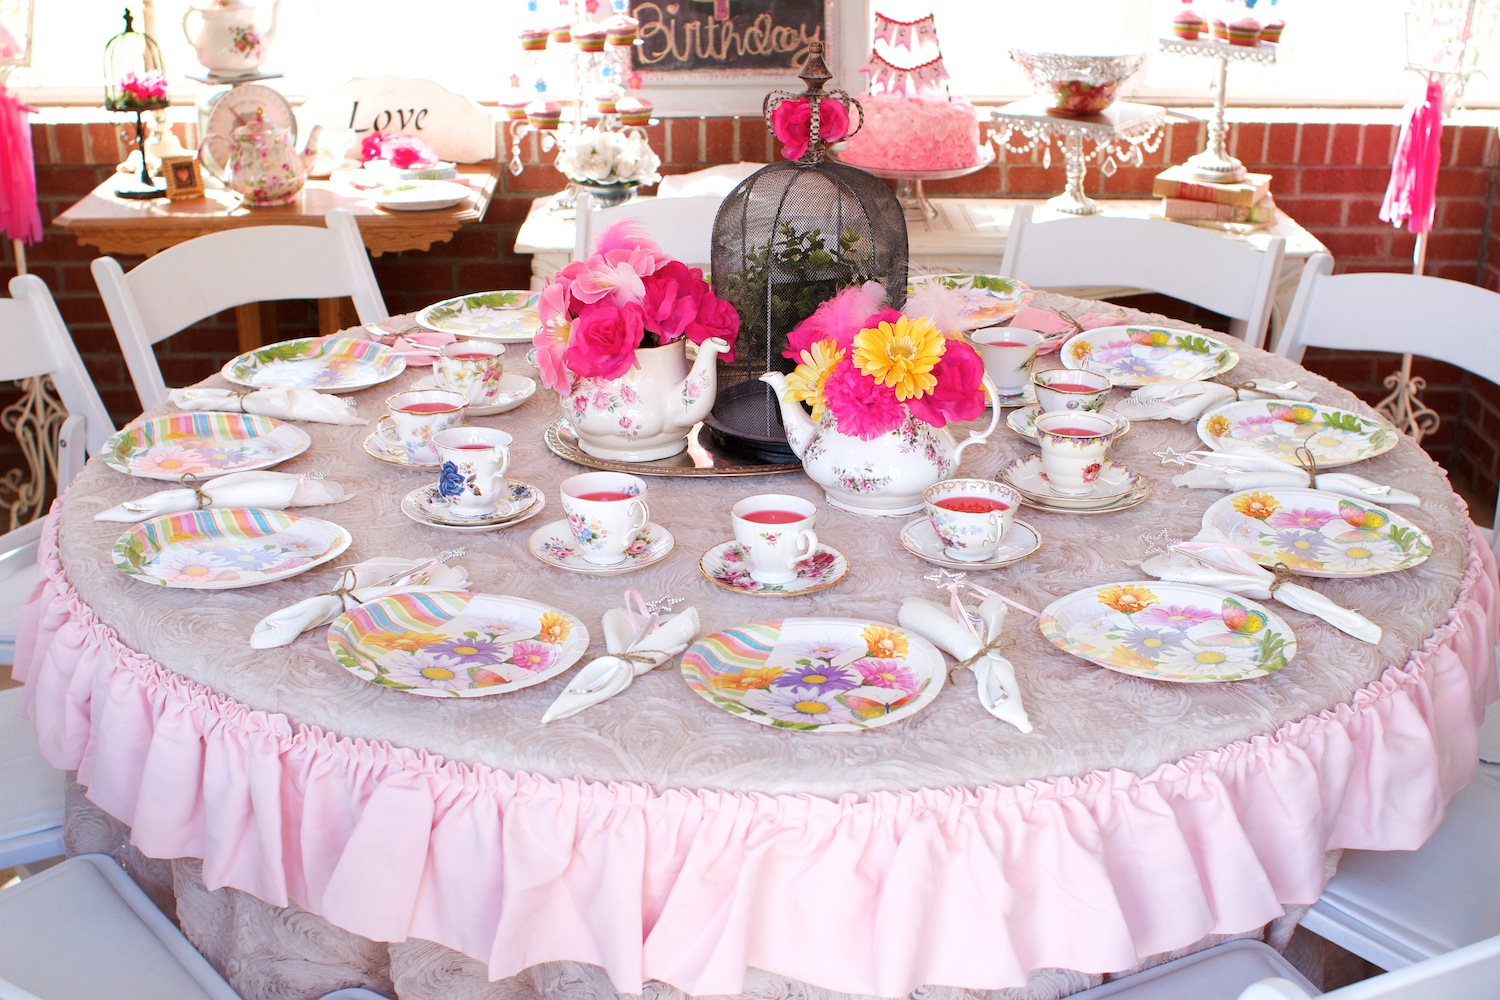 tea party Playing tea party is a way for children to work on important social skills, like thinking about the needs of others and taking turns they also learn about getting along with friends, as children imitate grownup behavior with manners and caring conversation.